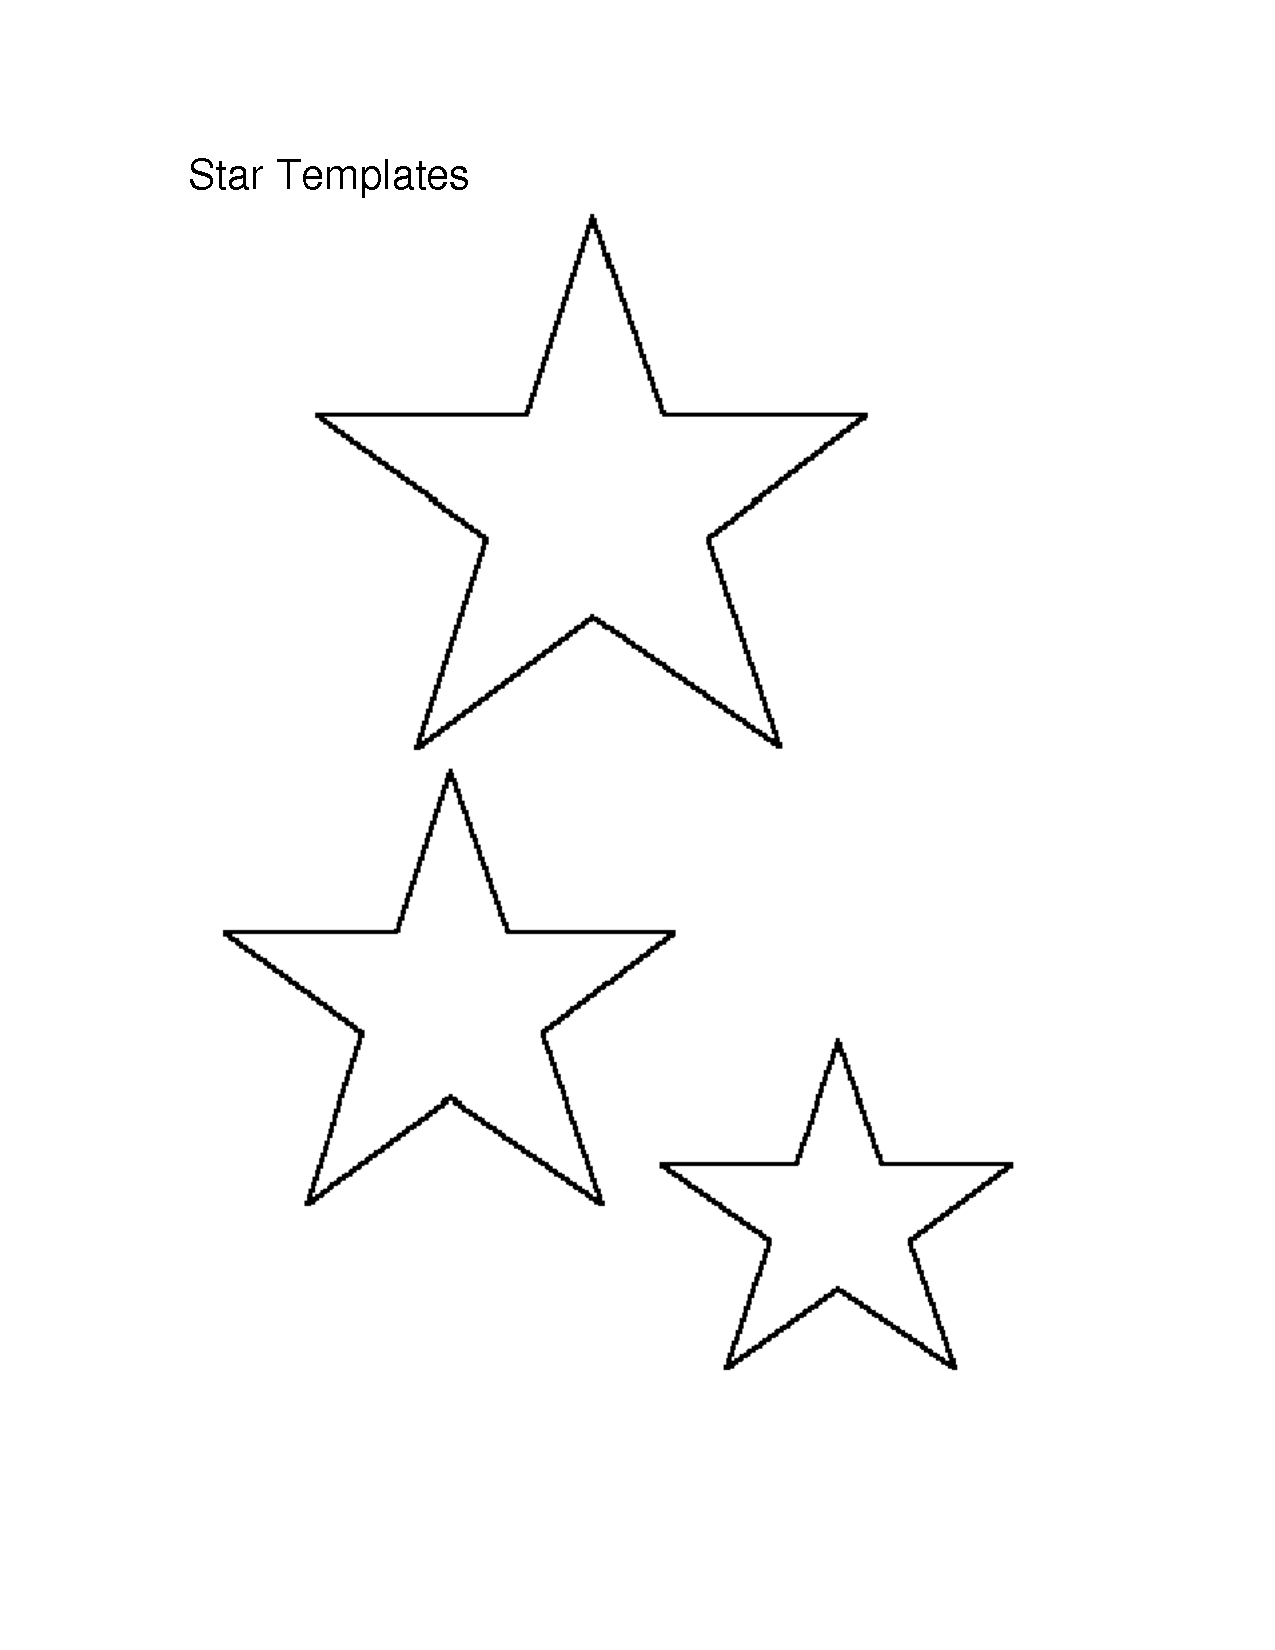 It is a photo of Printable Stars Shapes intended for free printable